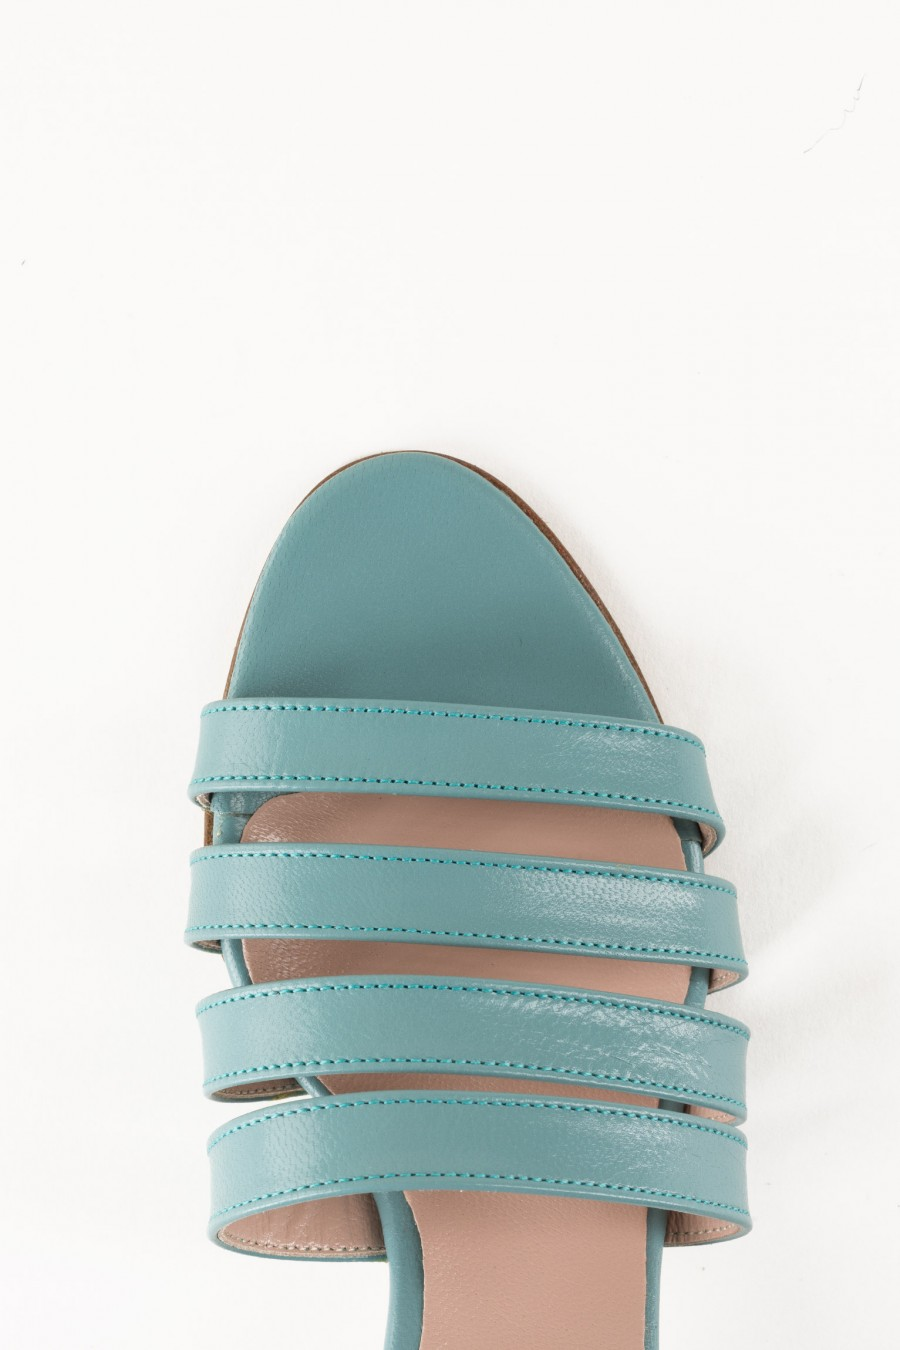 Light blue sandals with lists